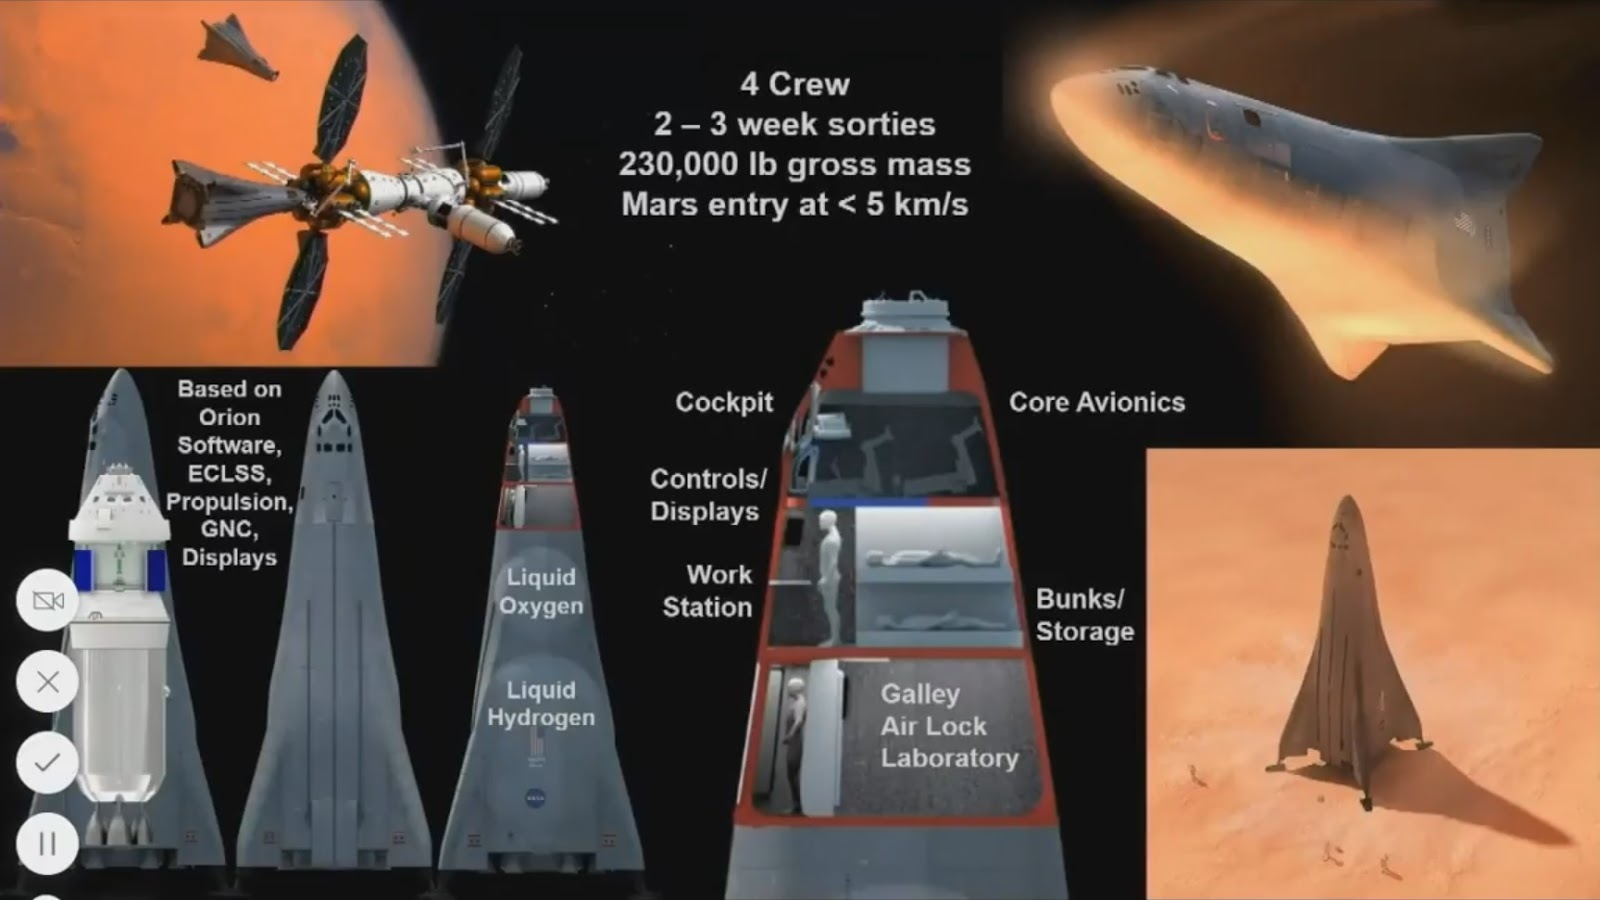 Lockheed Martin Mars lander concept for Mars Base Camp